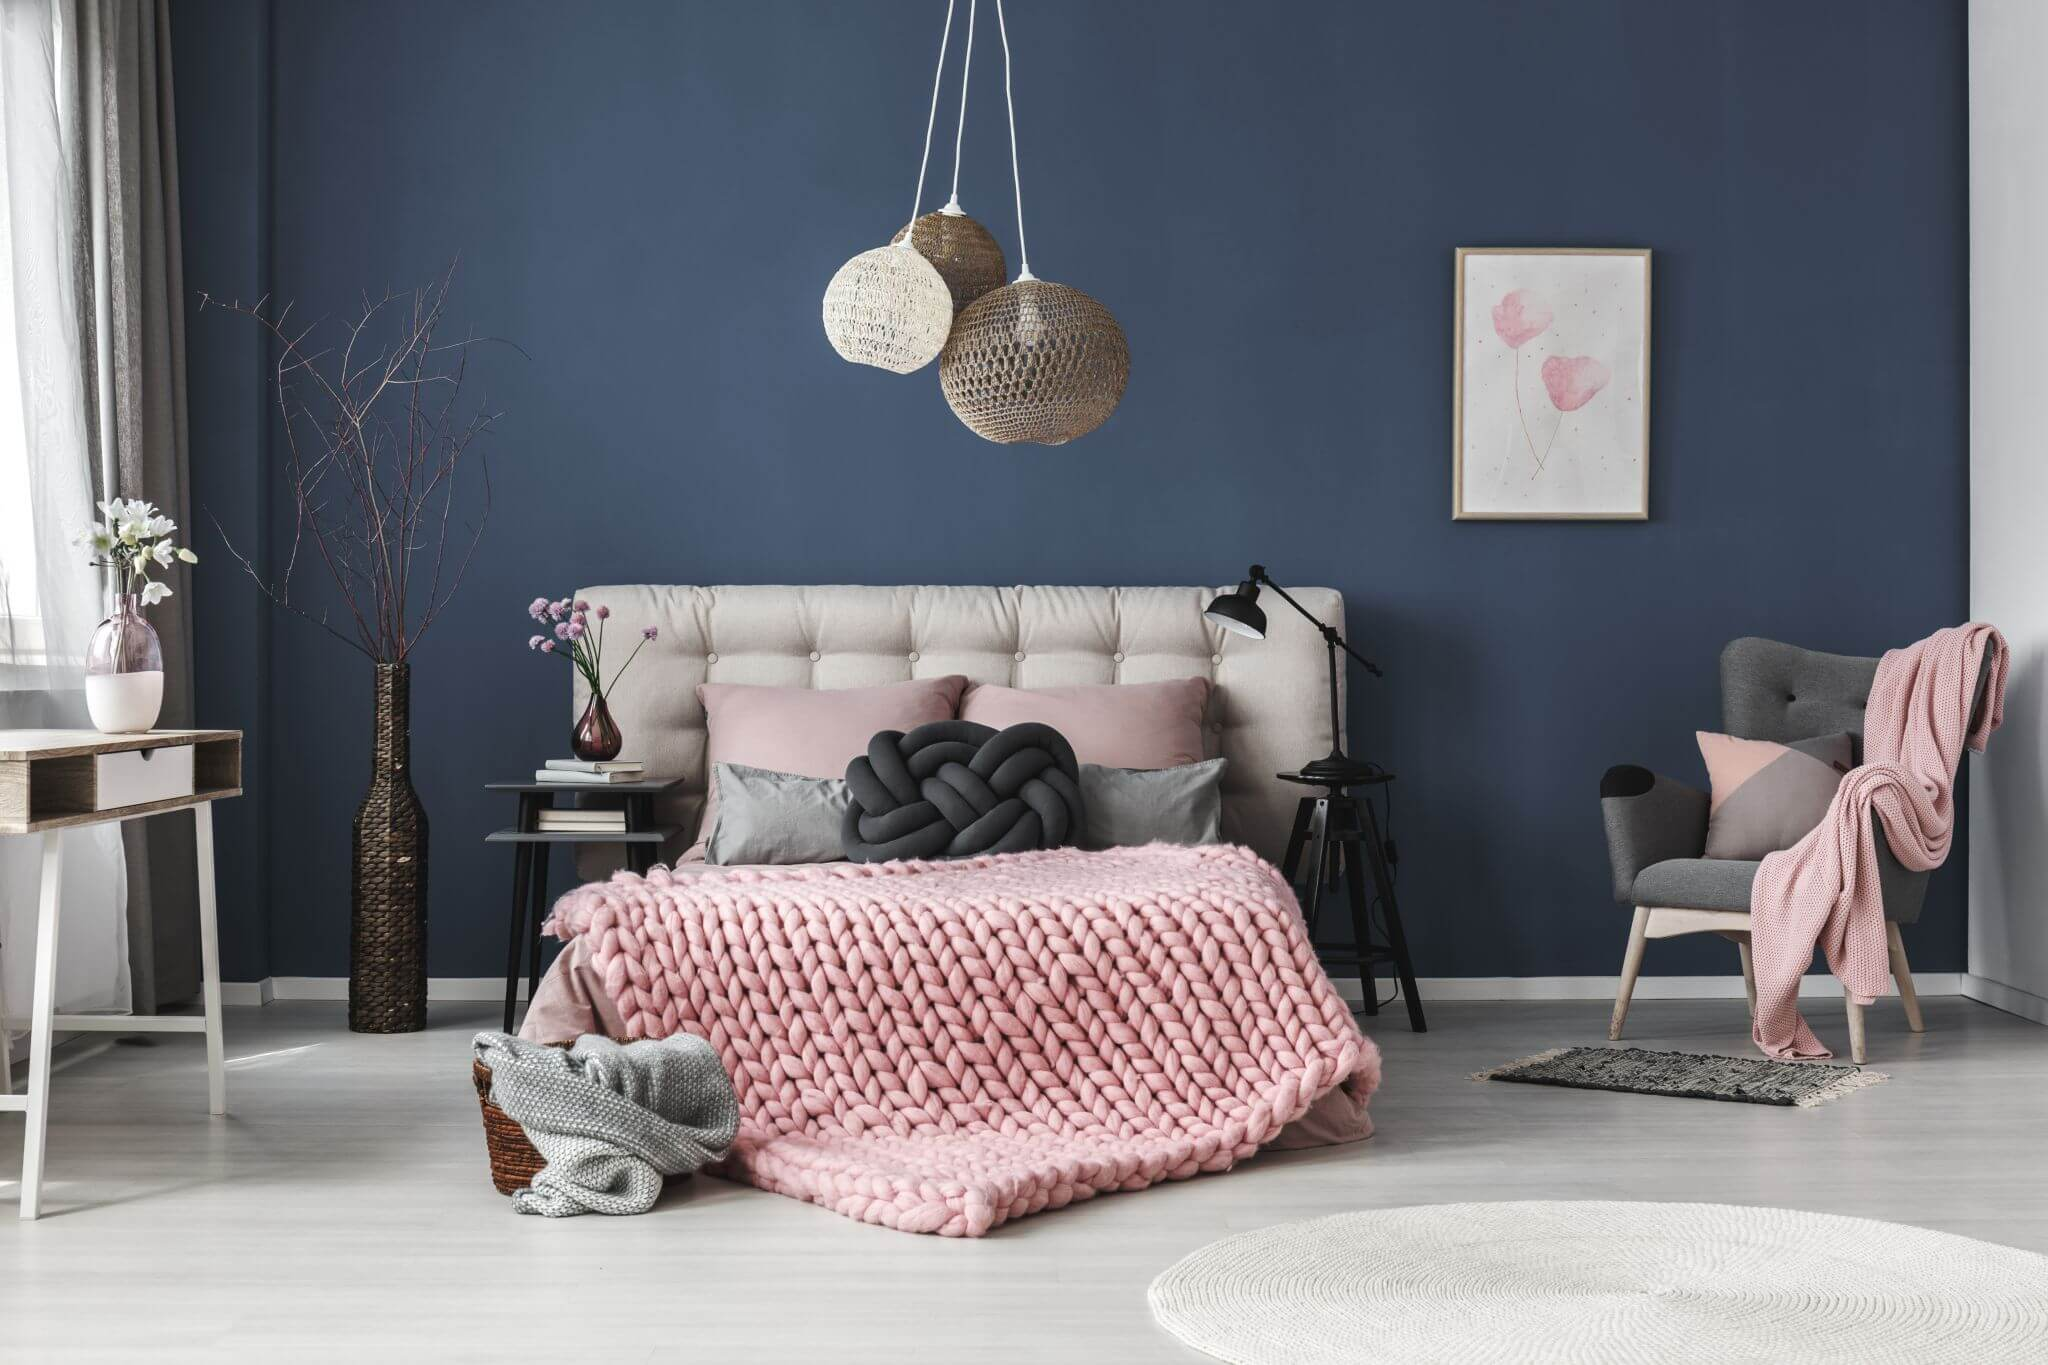 42 Images Of Amazing Navy Blue Pink Bedroom Hausratversicherungkosten